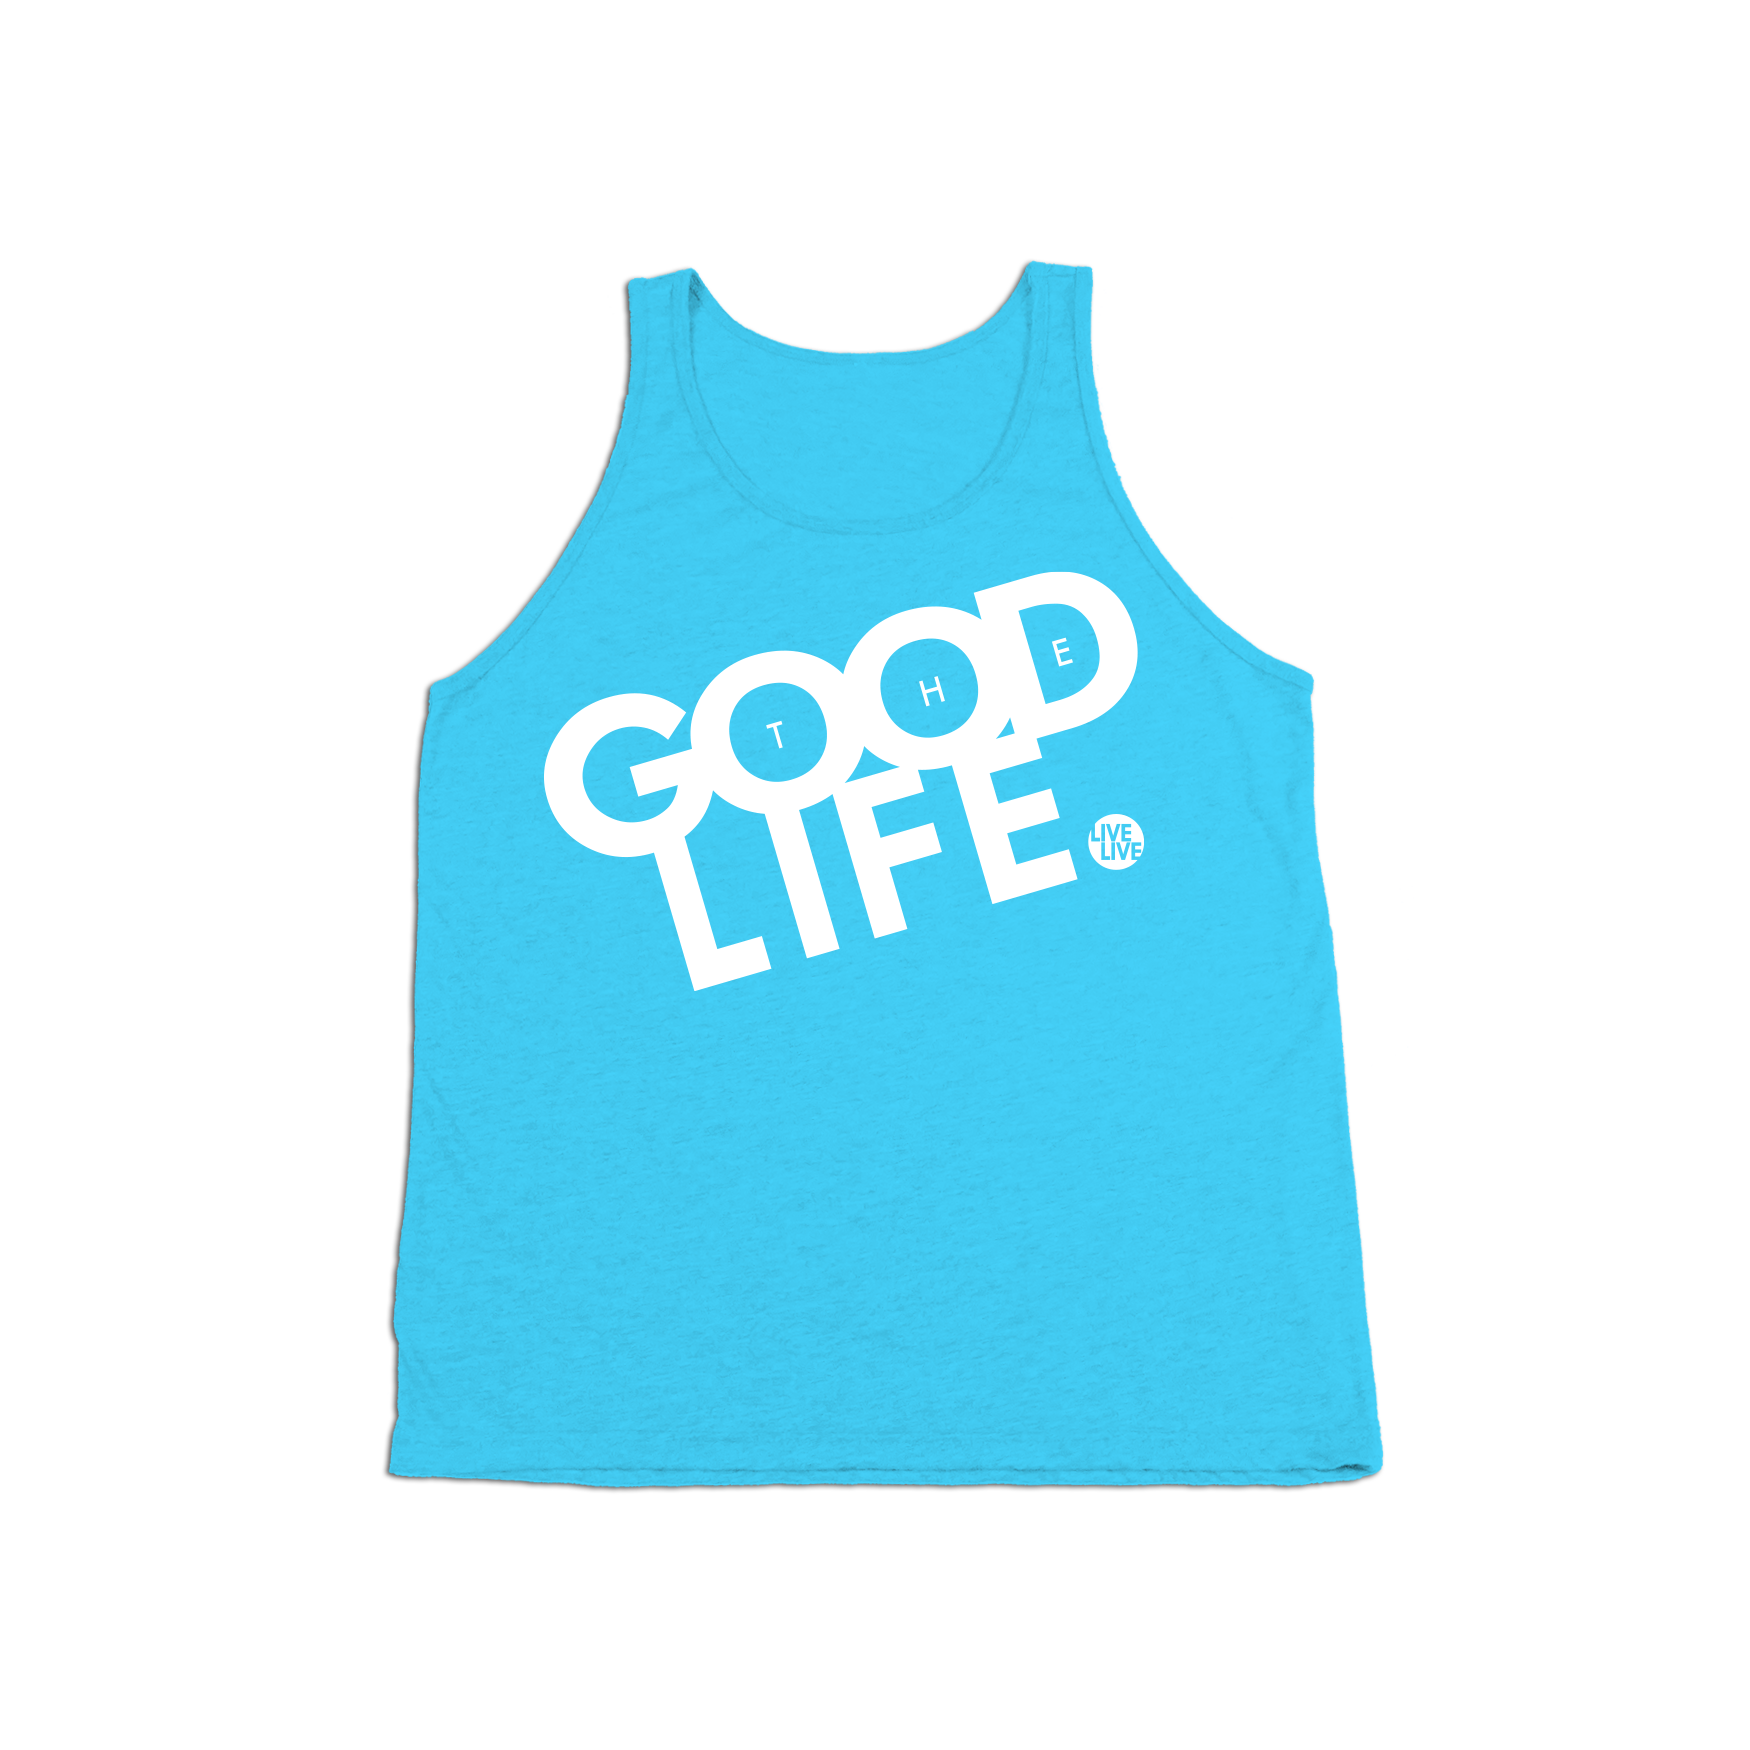 #THEGOODLIFE YOUTH Tank Top - Hat Mount for GoPro